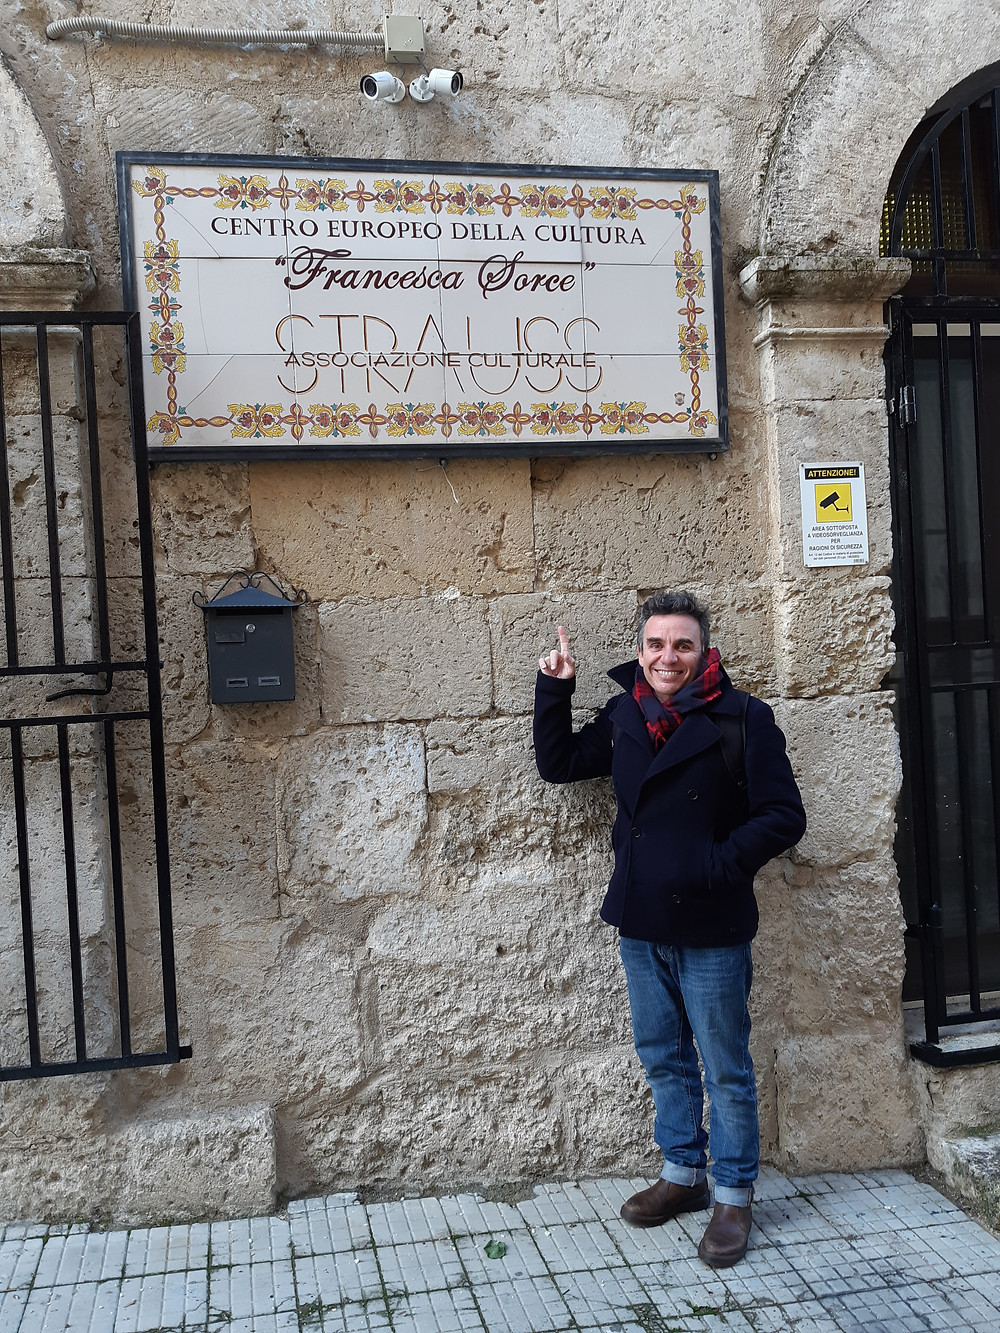 This is me standing outside of the Strauss Association here in Mussomeli, Sicily.